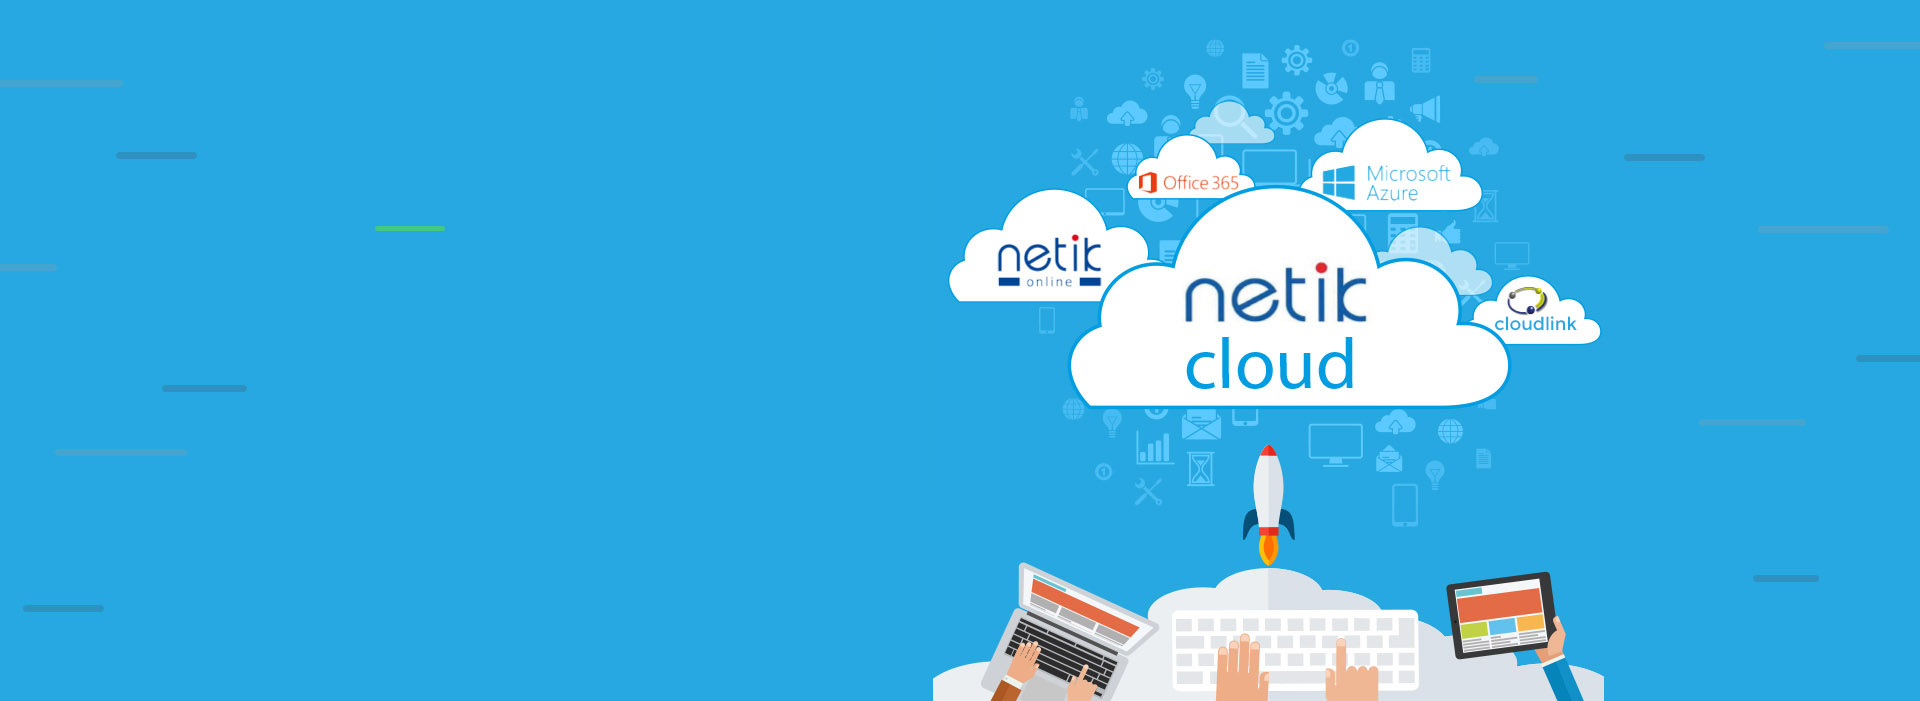 cloud services, dynamics nav, navision, coolvision, citrix, Office 365, Azure